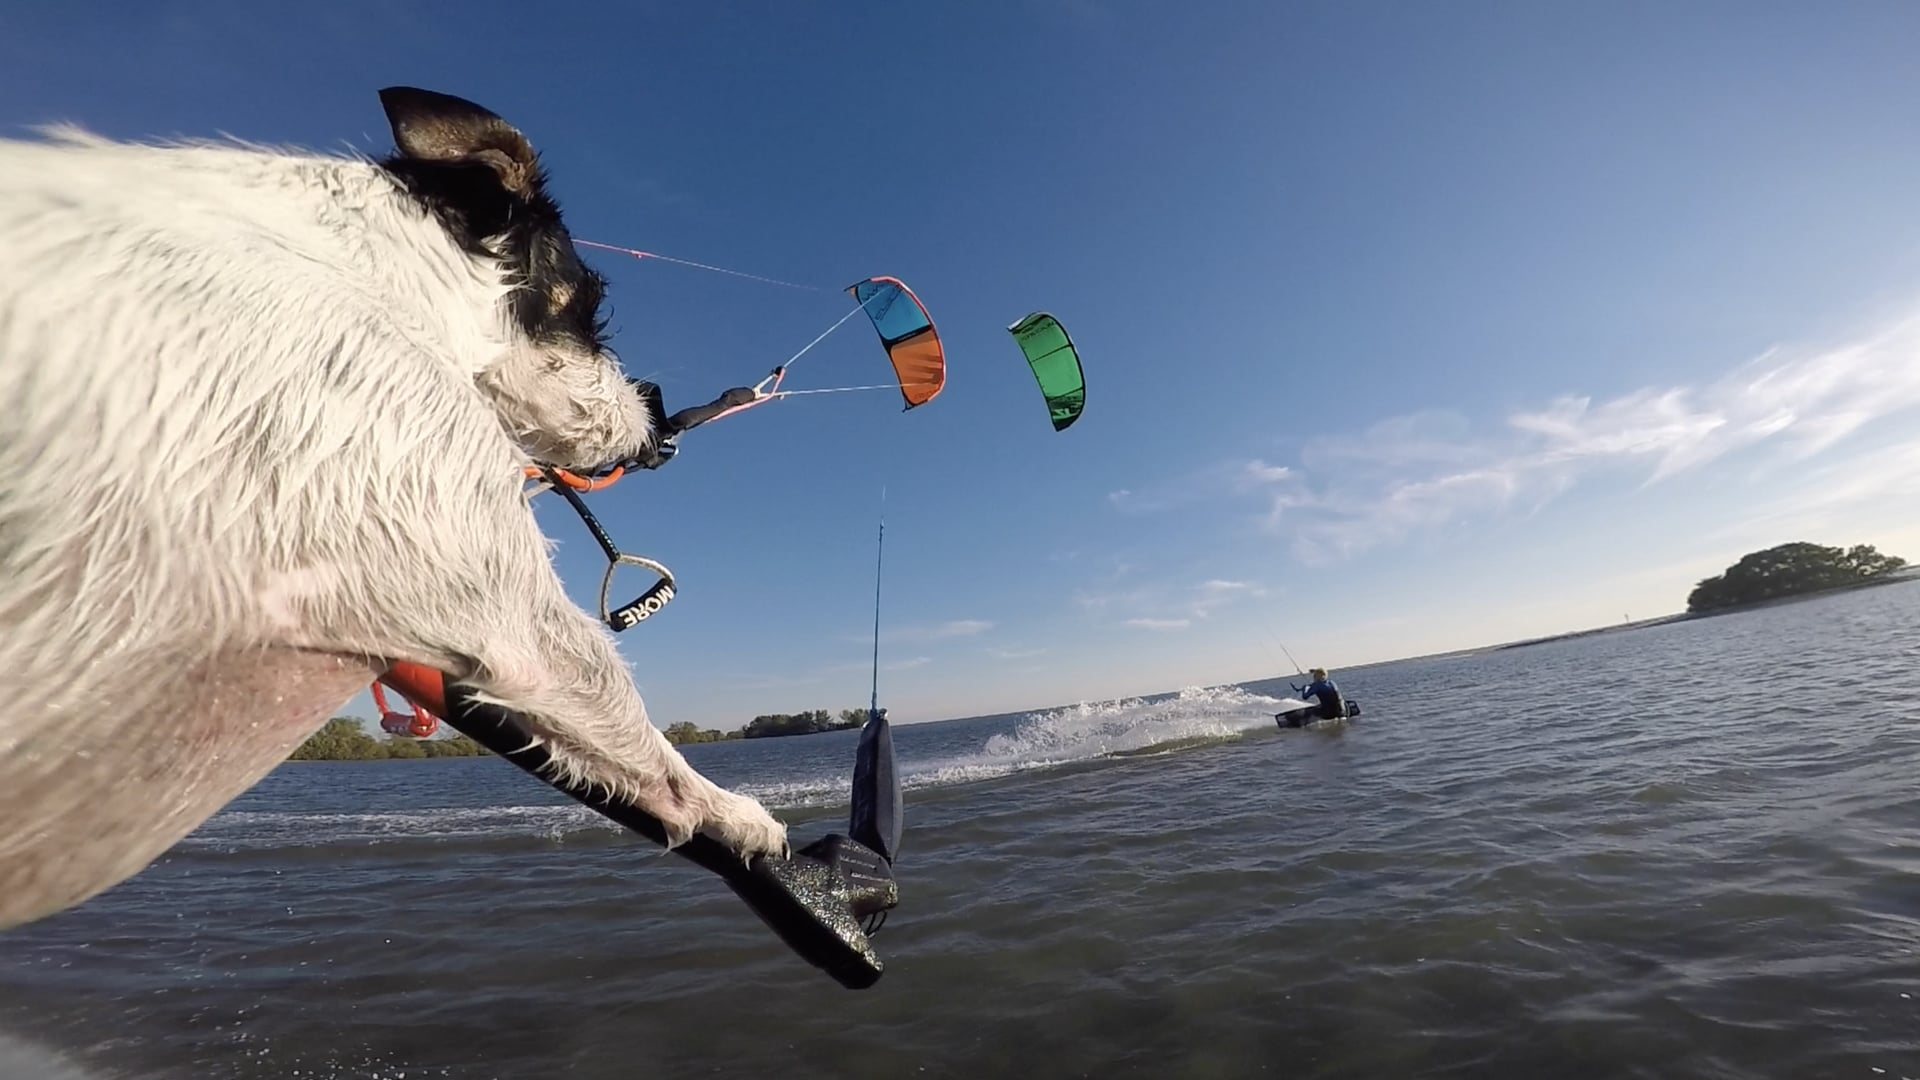 The Boys are back in town - with Epic Kites Kiteboarding